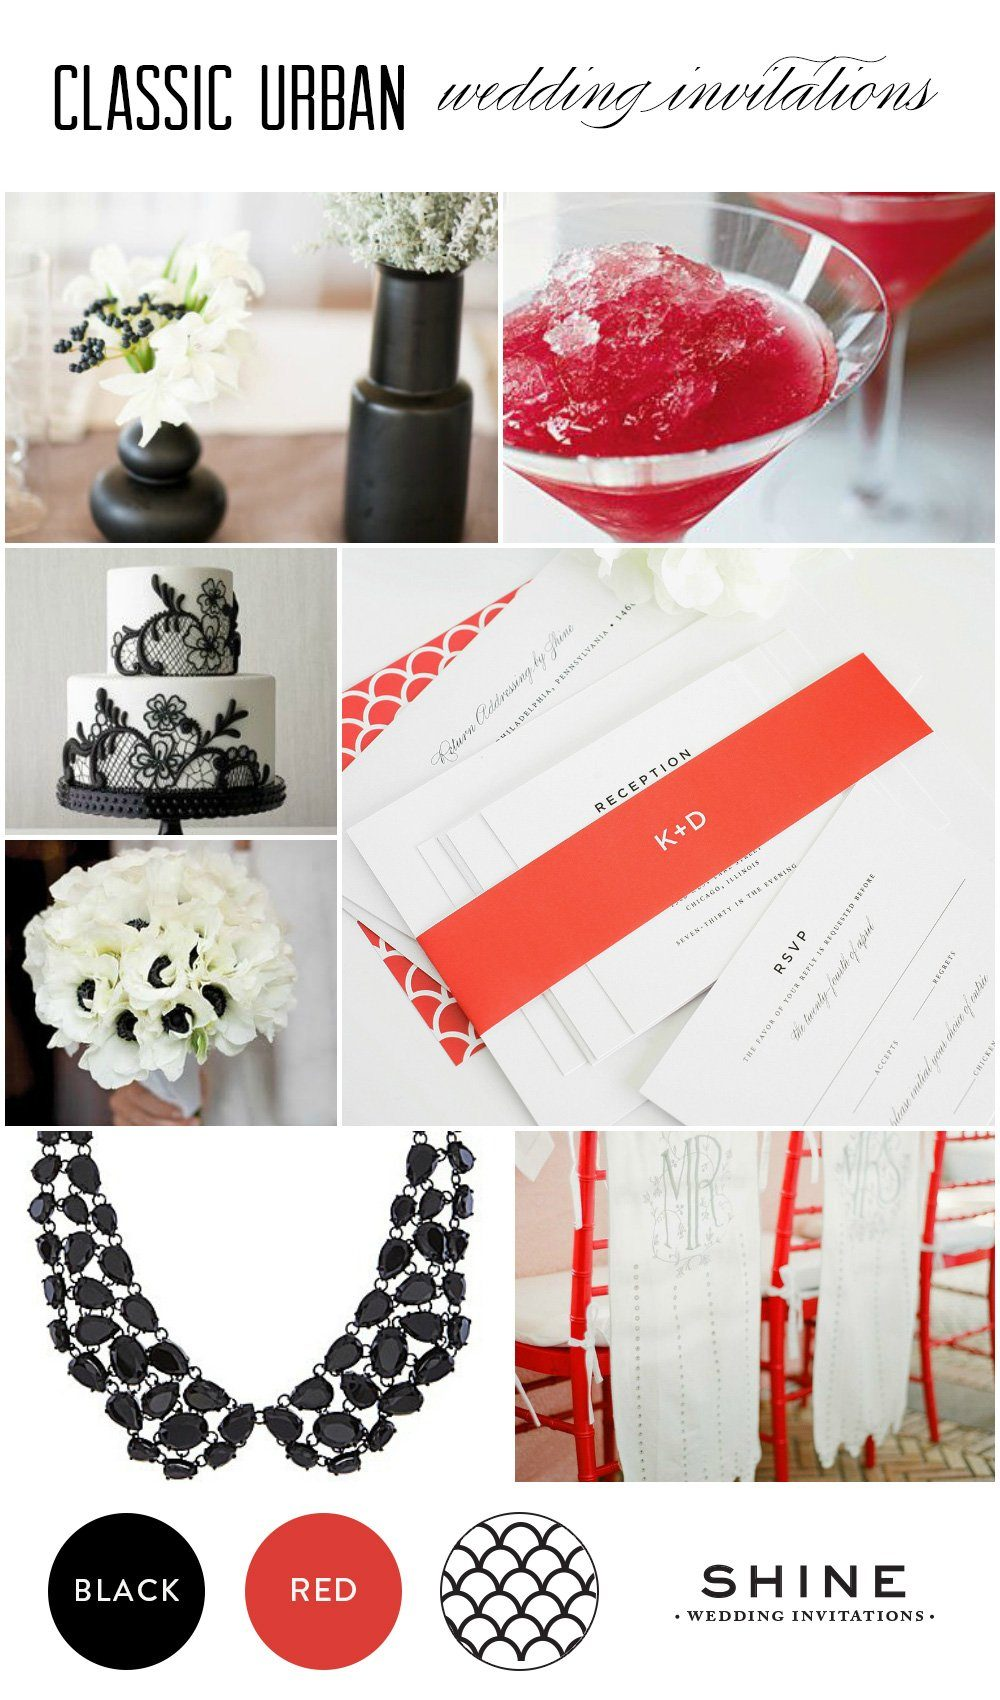 Black, white and red wedding inspiration